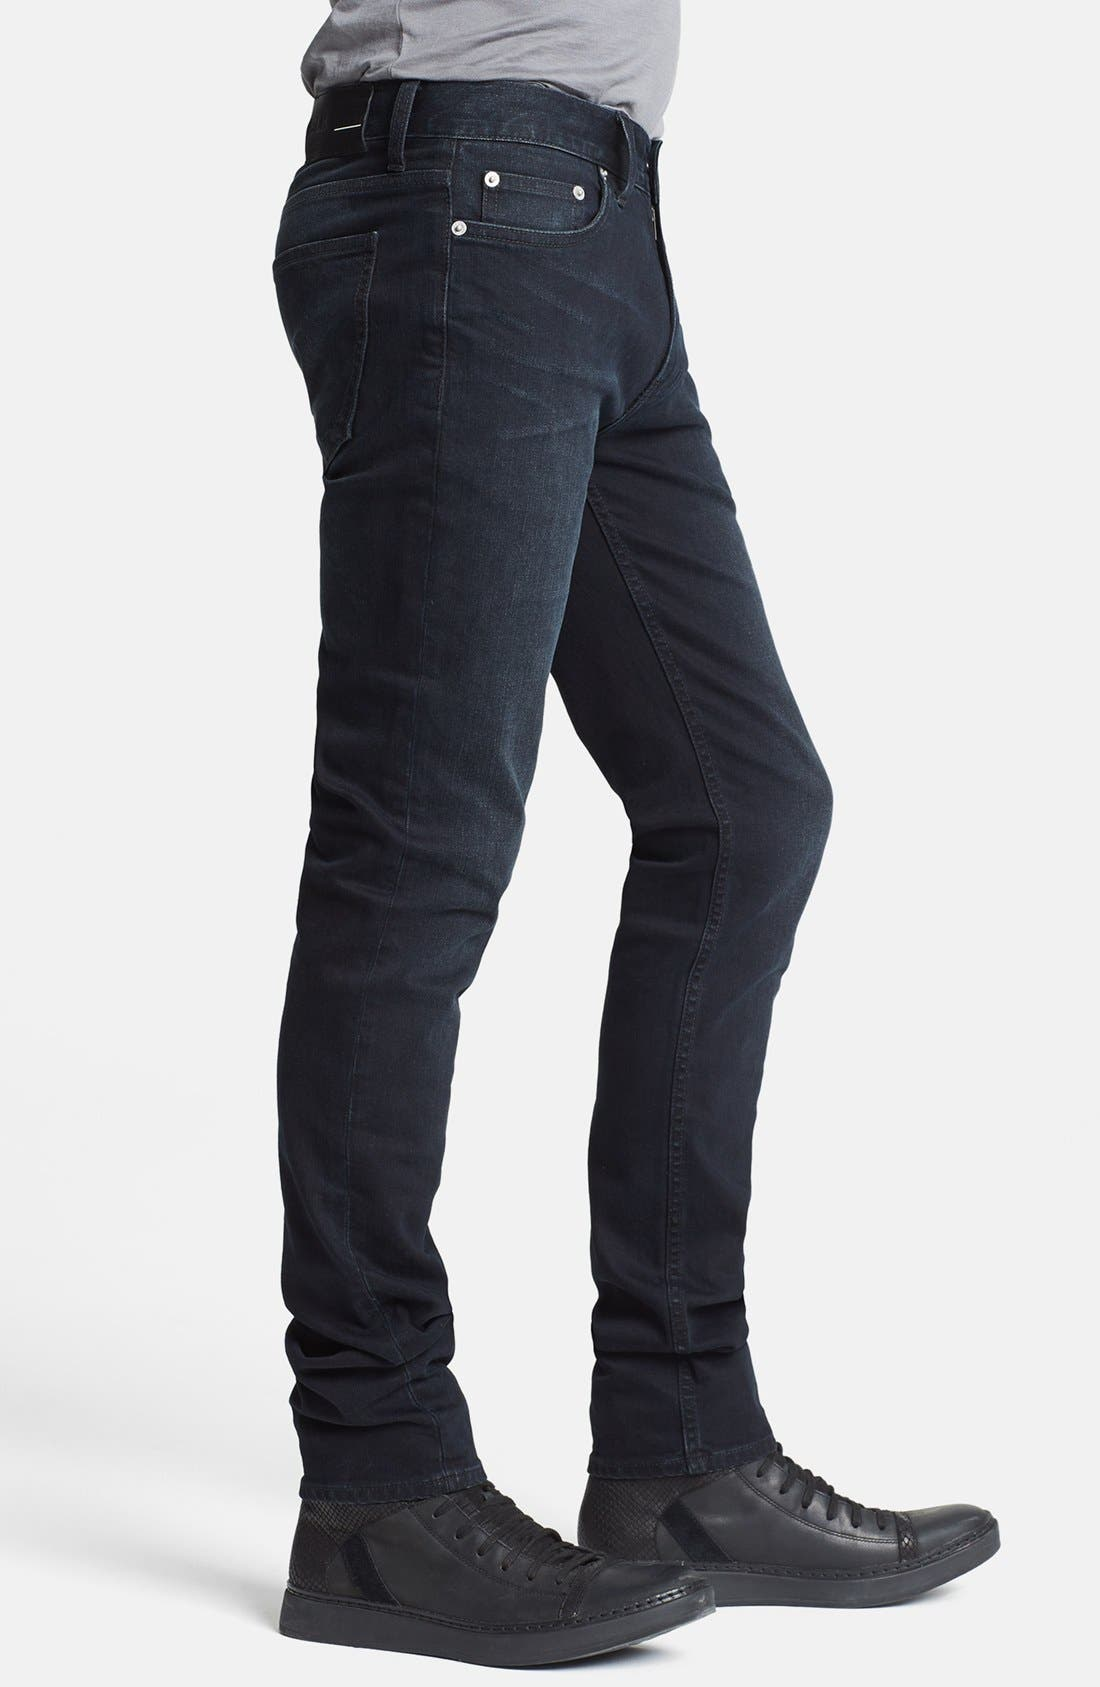 'Jeans 5' Slim Straight Leg Jeans,                             Alternate thumbnail 4, color,                             001